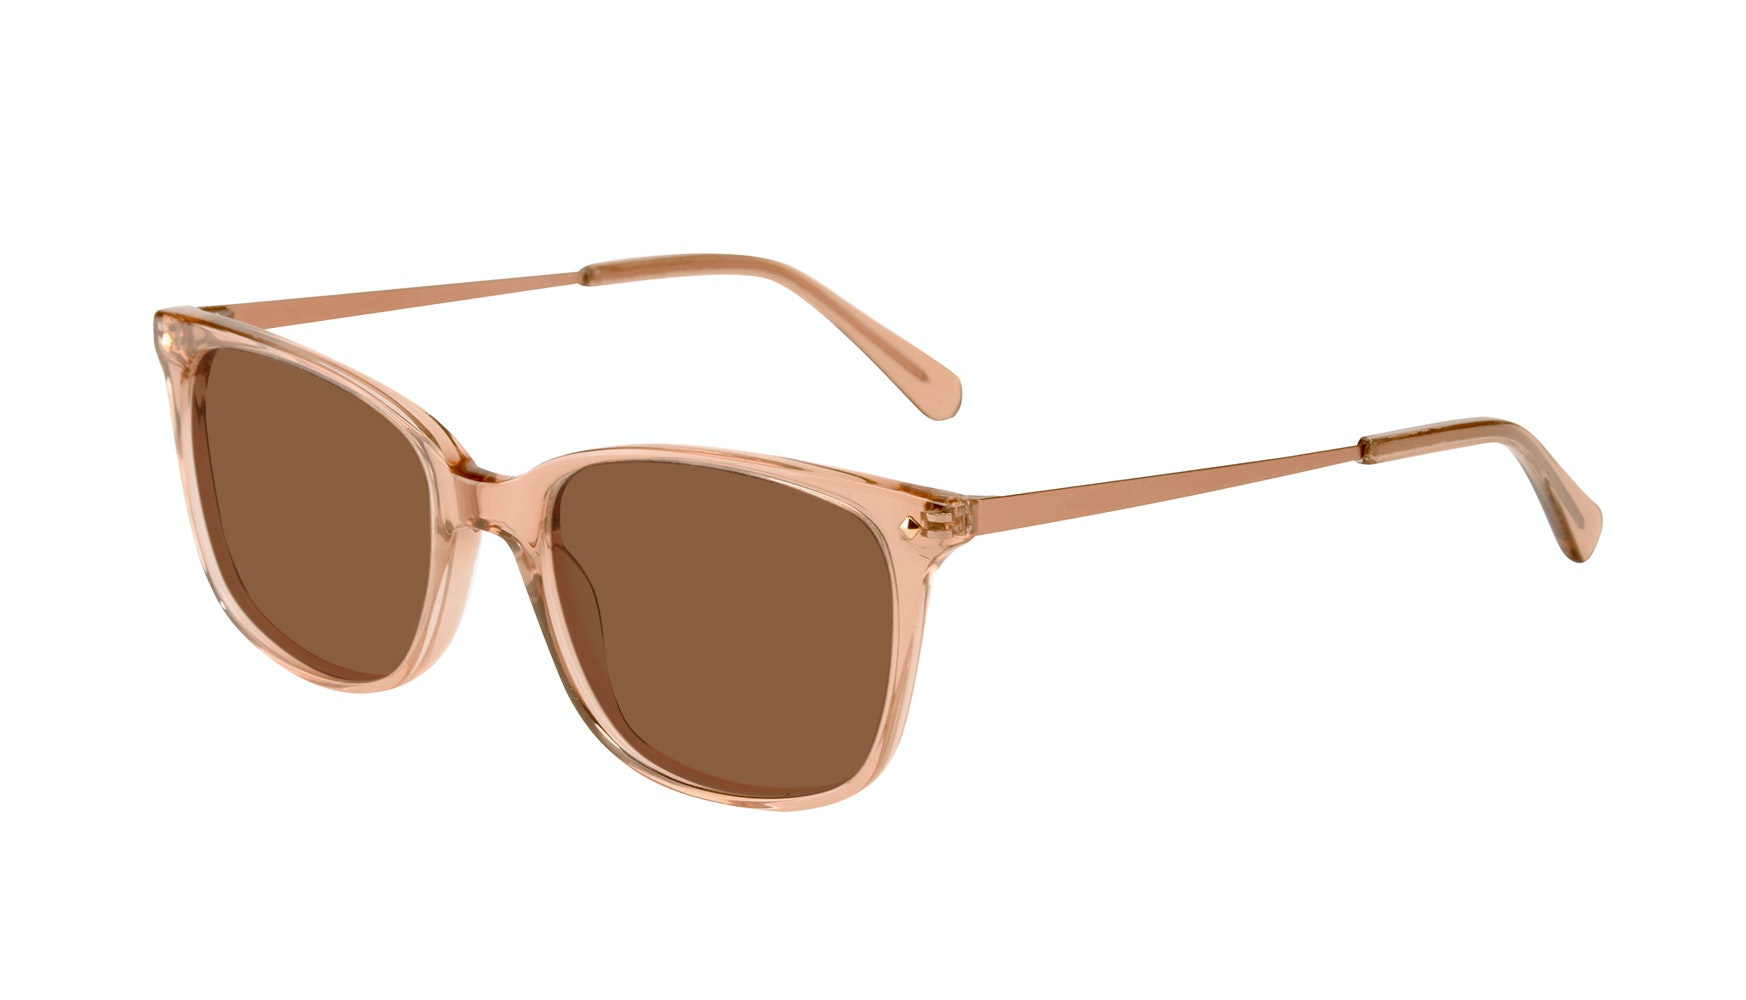 Affordable Fashion Glasses Rectangle Square Sunglasses Women Refine Toffee Tilt